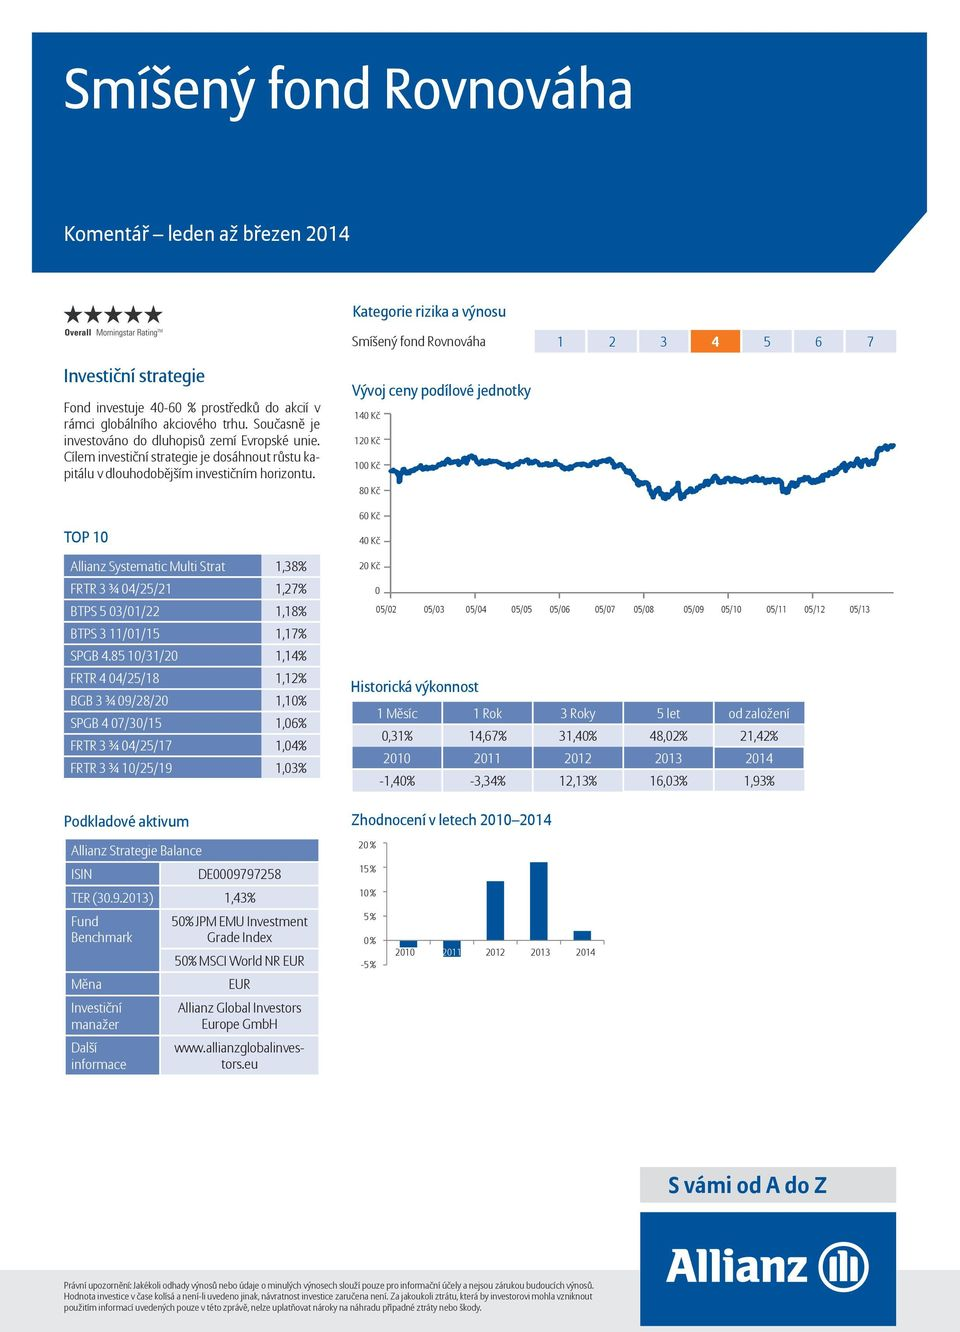 Allianz Systematic Multi Strat 1,38% FRTR 3 ¾ 04/25/21 1,27% BTPS 5 03/01/22 1,18% BTPS 3 11/01/15 1,17% SPGB 4.